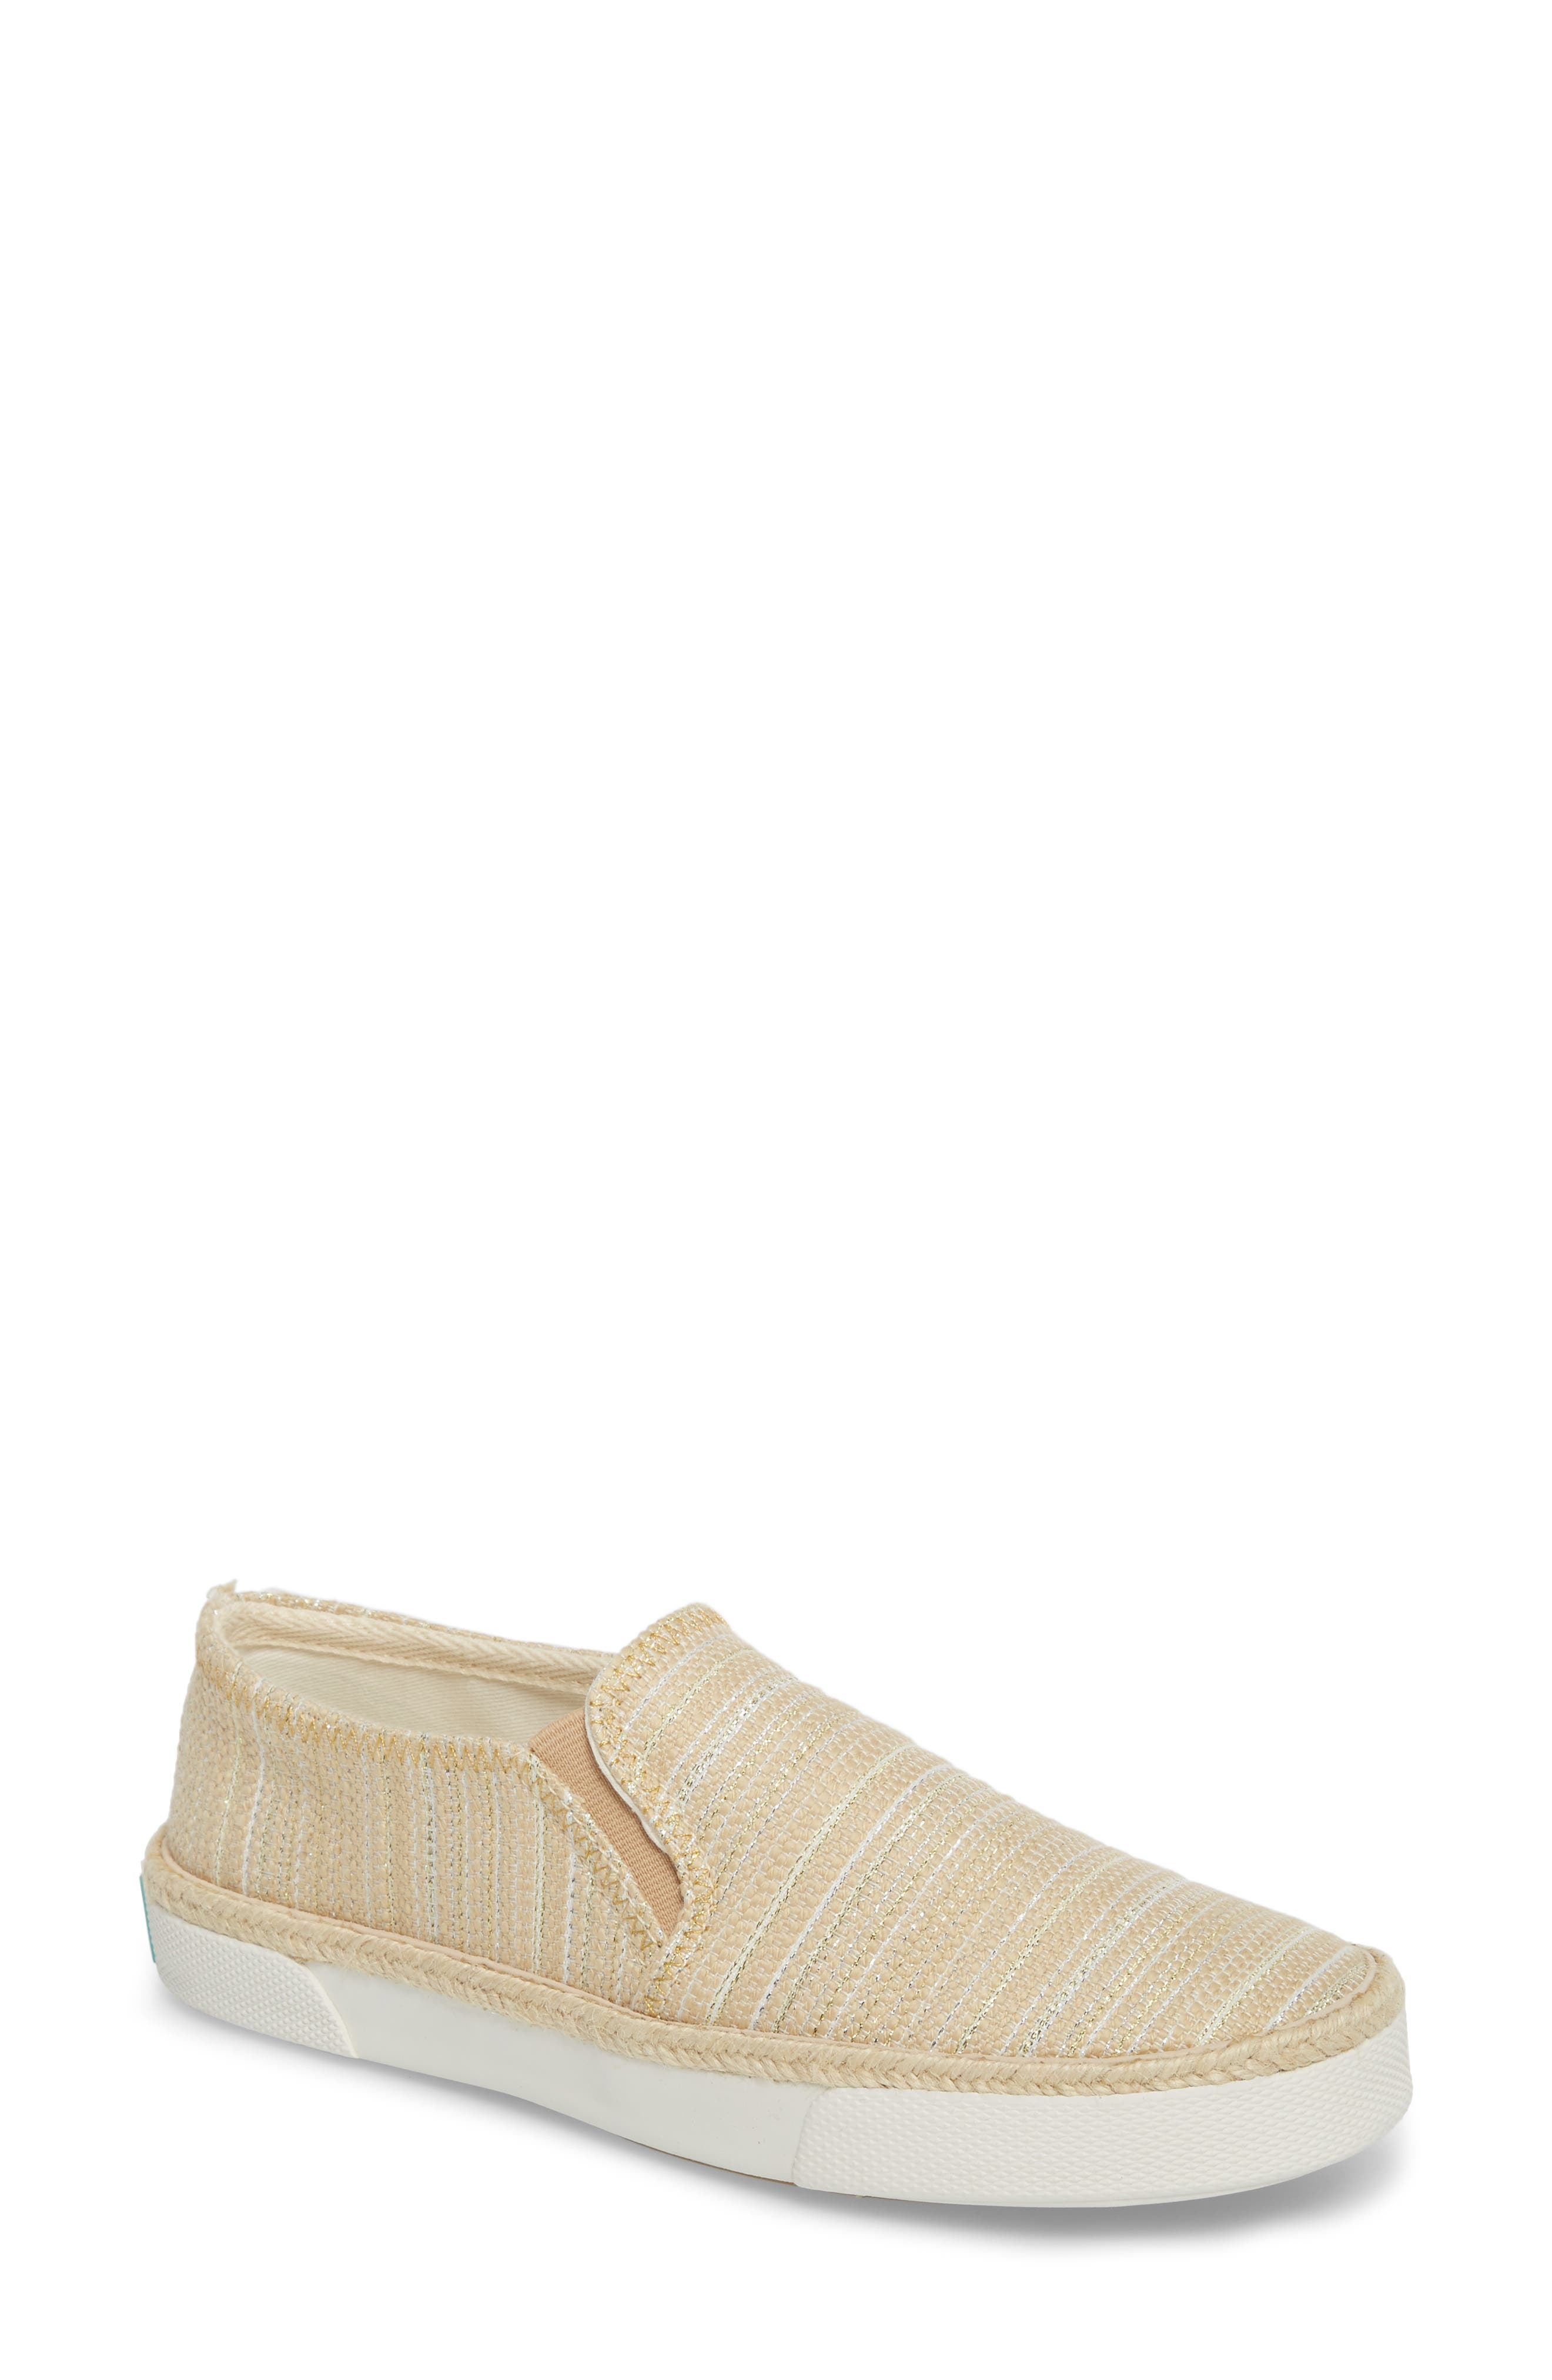 Tucker Slip-On Sneaker,                         Main,                         color, Tan